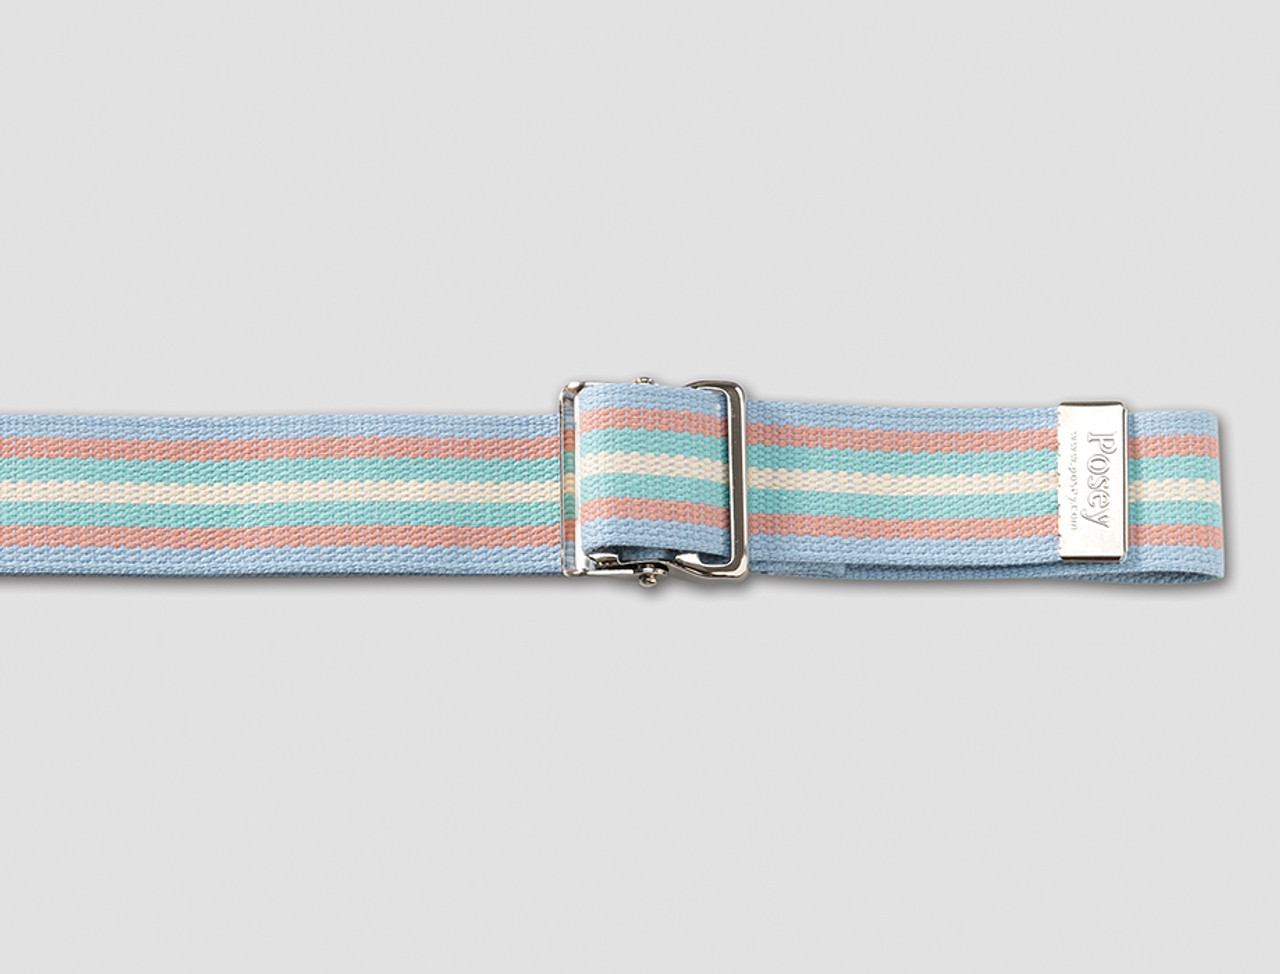 71 Posey 6525L Coral Reef Gait Belt with Nickel Buckle